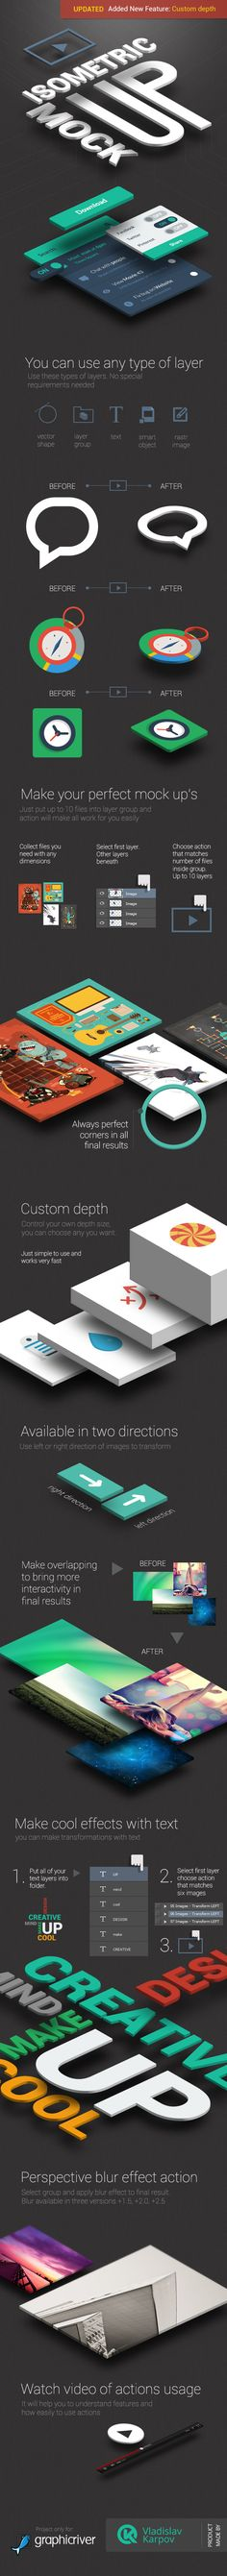 Isometric Mock-UP Actions - Actions Photoshop